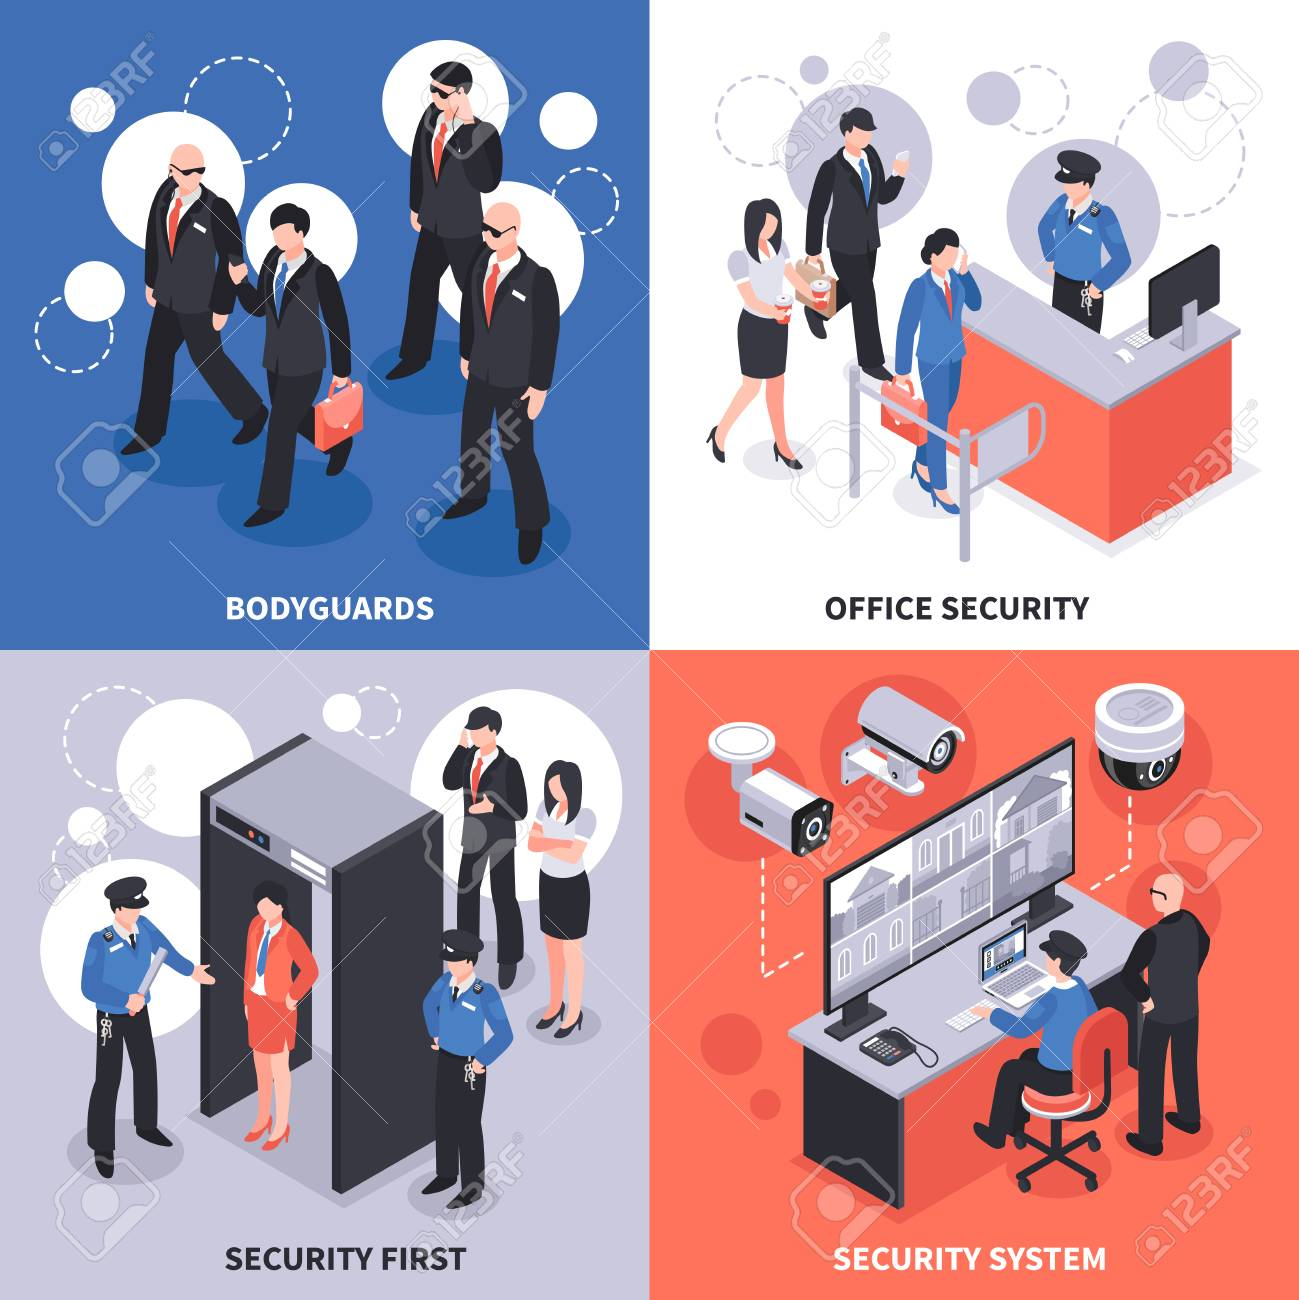 Security system isometric design concept vector illustration. - 88845392